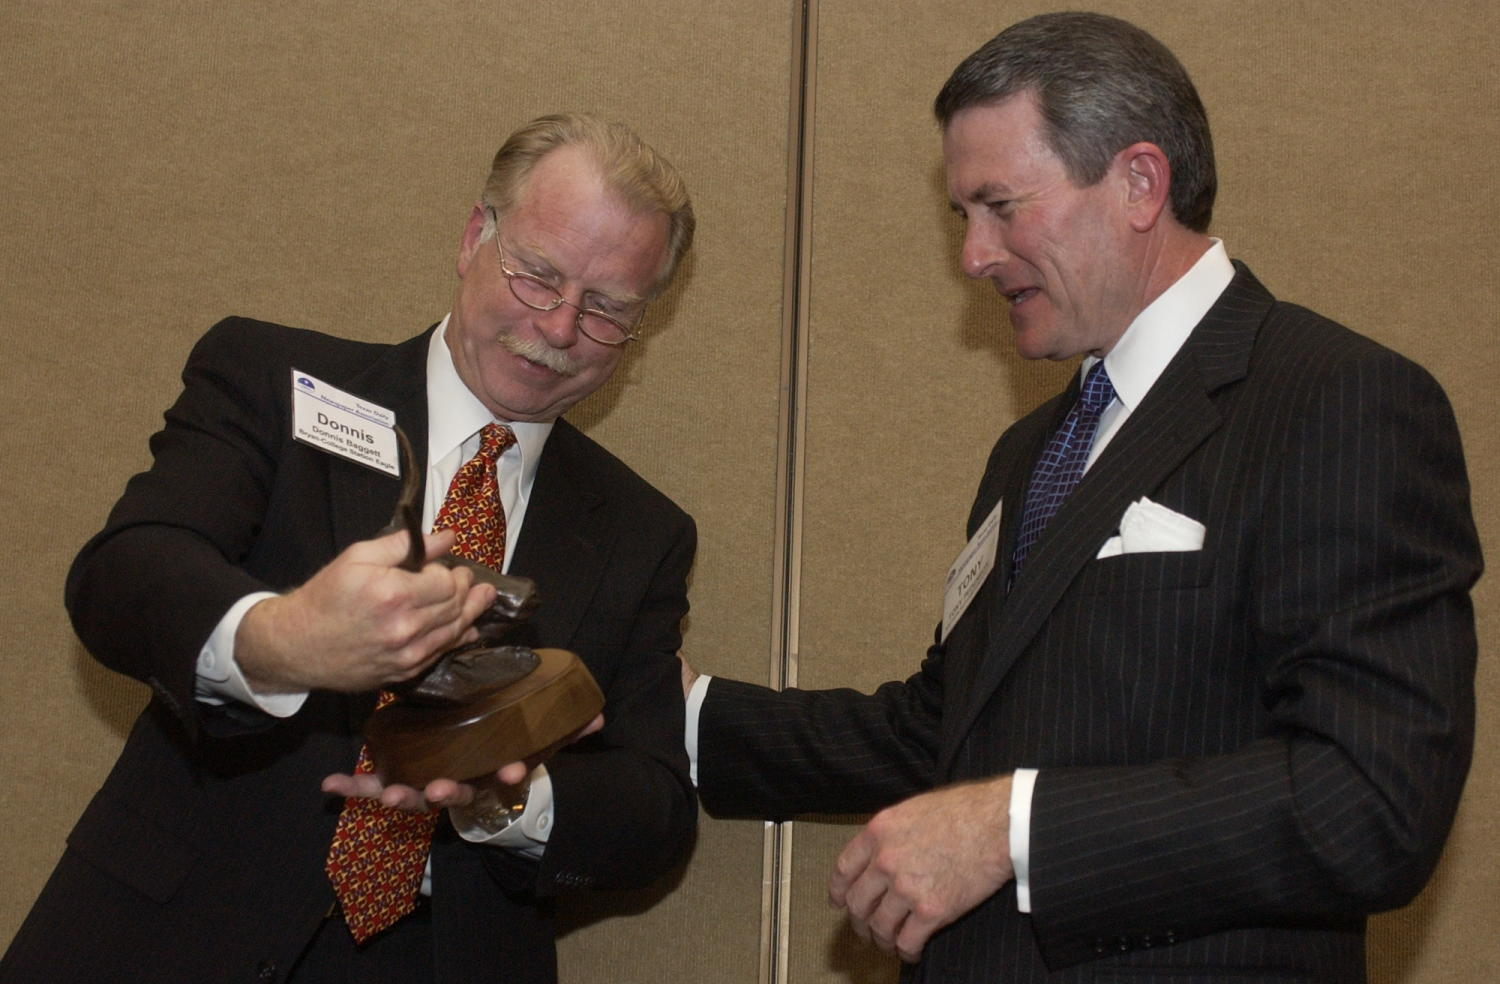 [Tony Pederson and Donnis Baggett], Photograph of Tony Pederson, of the Southern Methodist University and Donnis Baggett looking over an award together during the 2004 Texas Daily News Association annual conference held in Corpus Christi.,